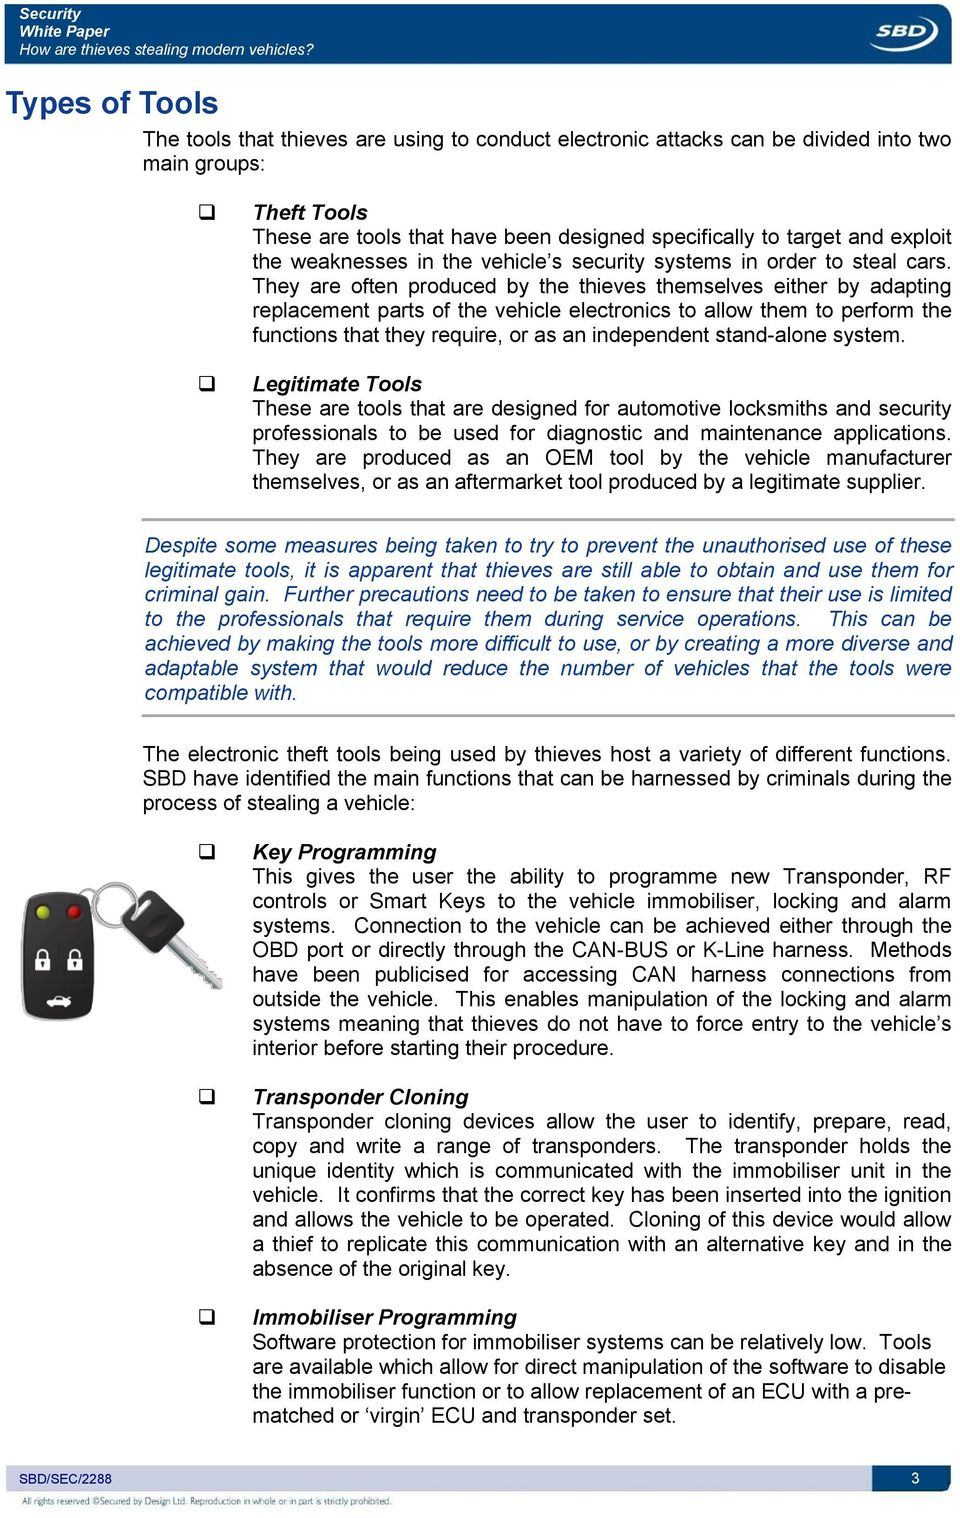 White Paper How are thieves stealing modern vehicles? - PDF